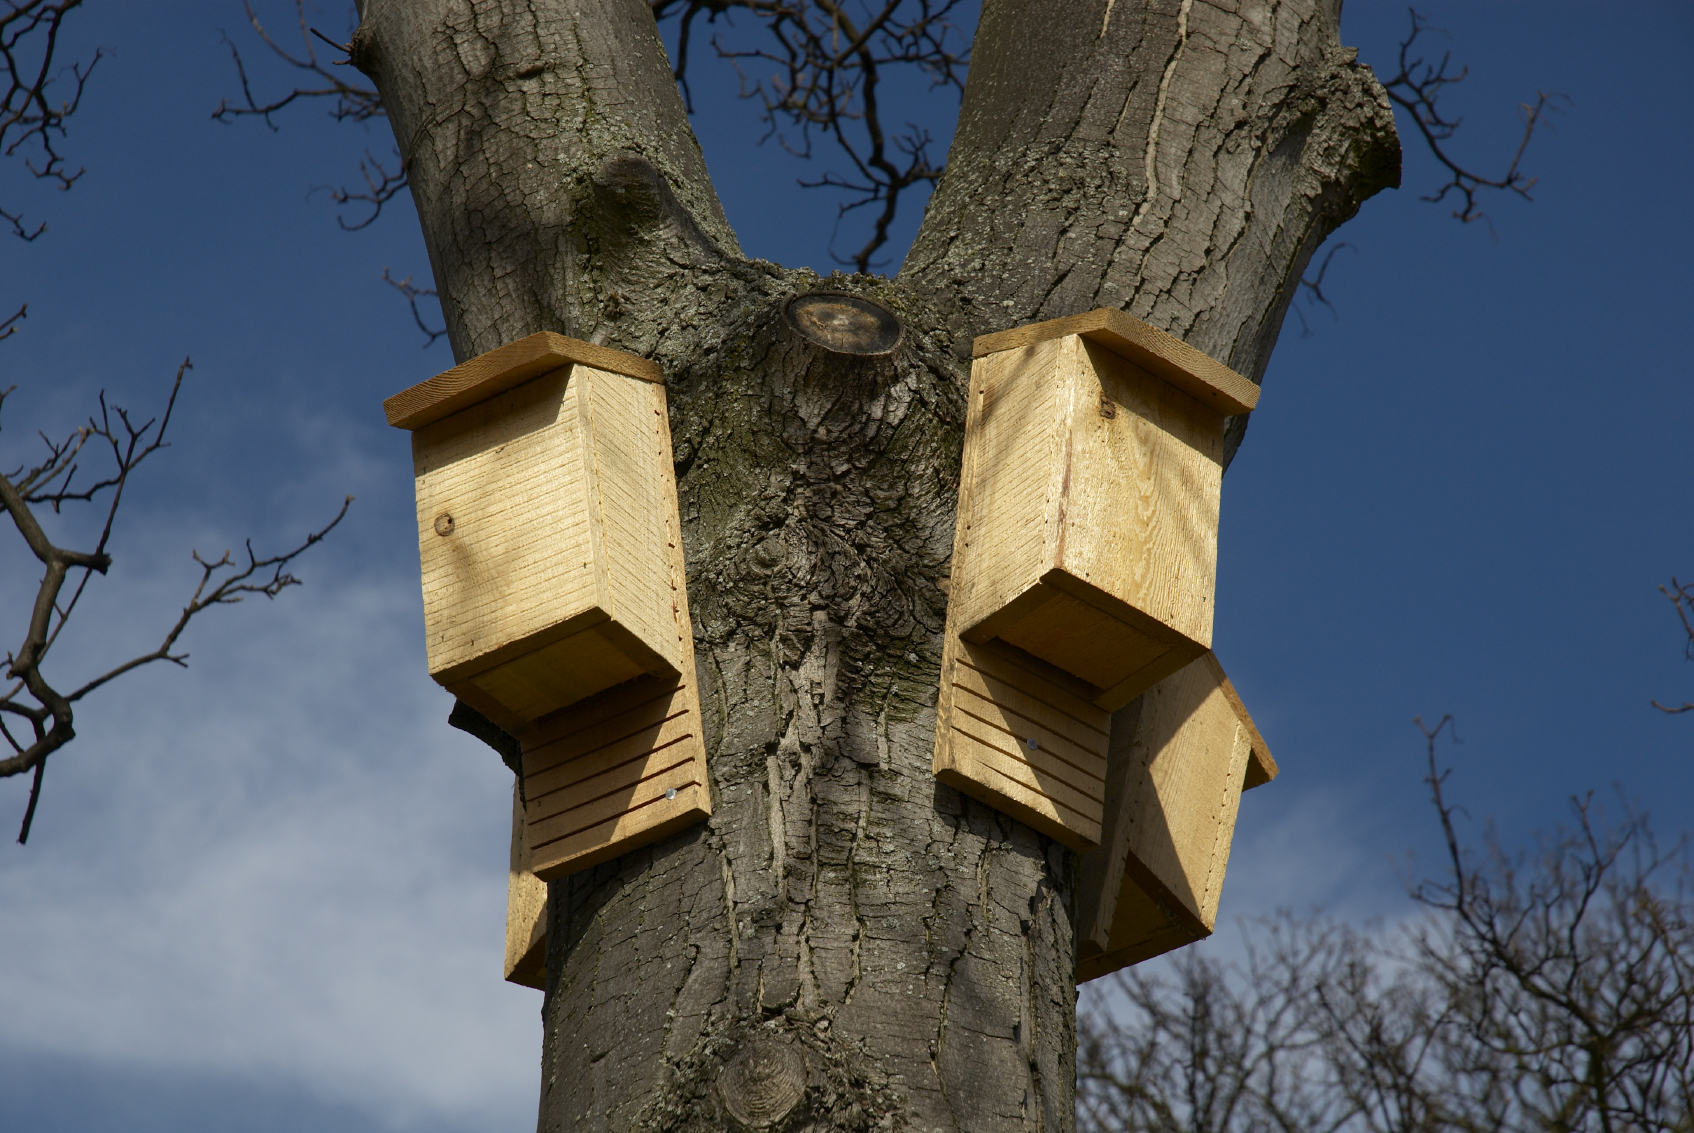 Bat-boxes-installed-in-a-tree-to-benefit-the-ecology-of-the-area.